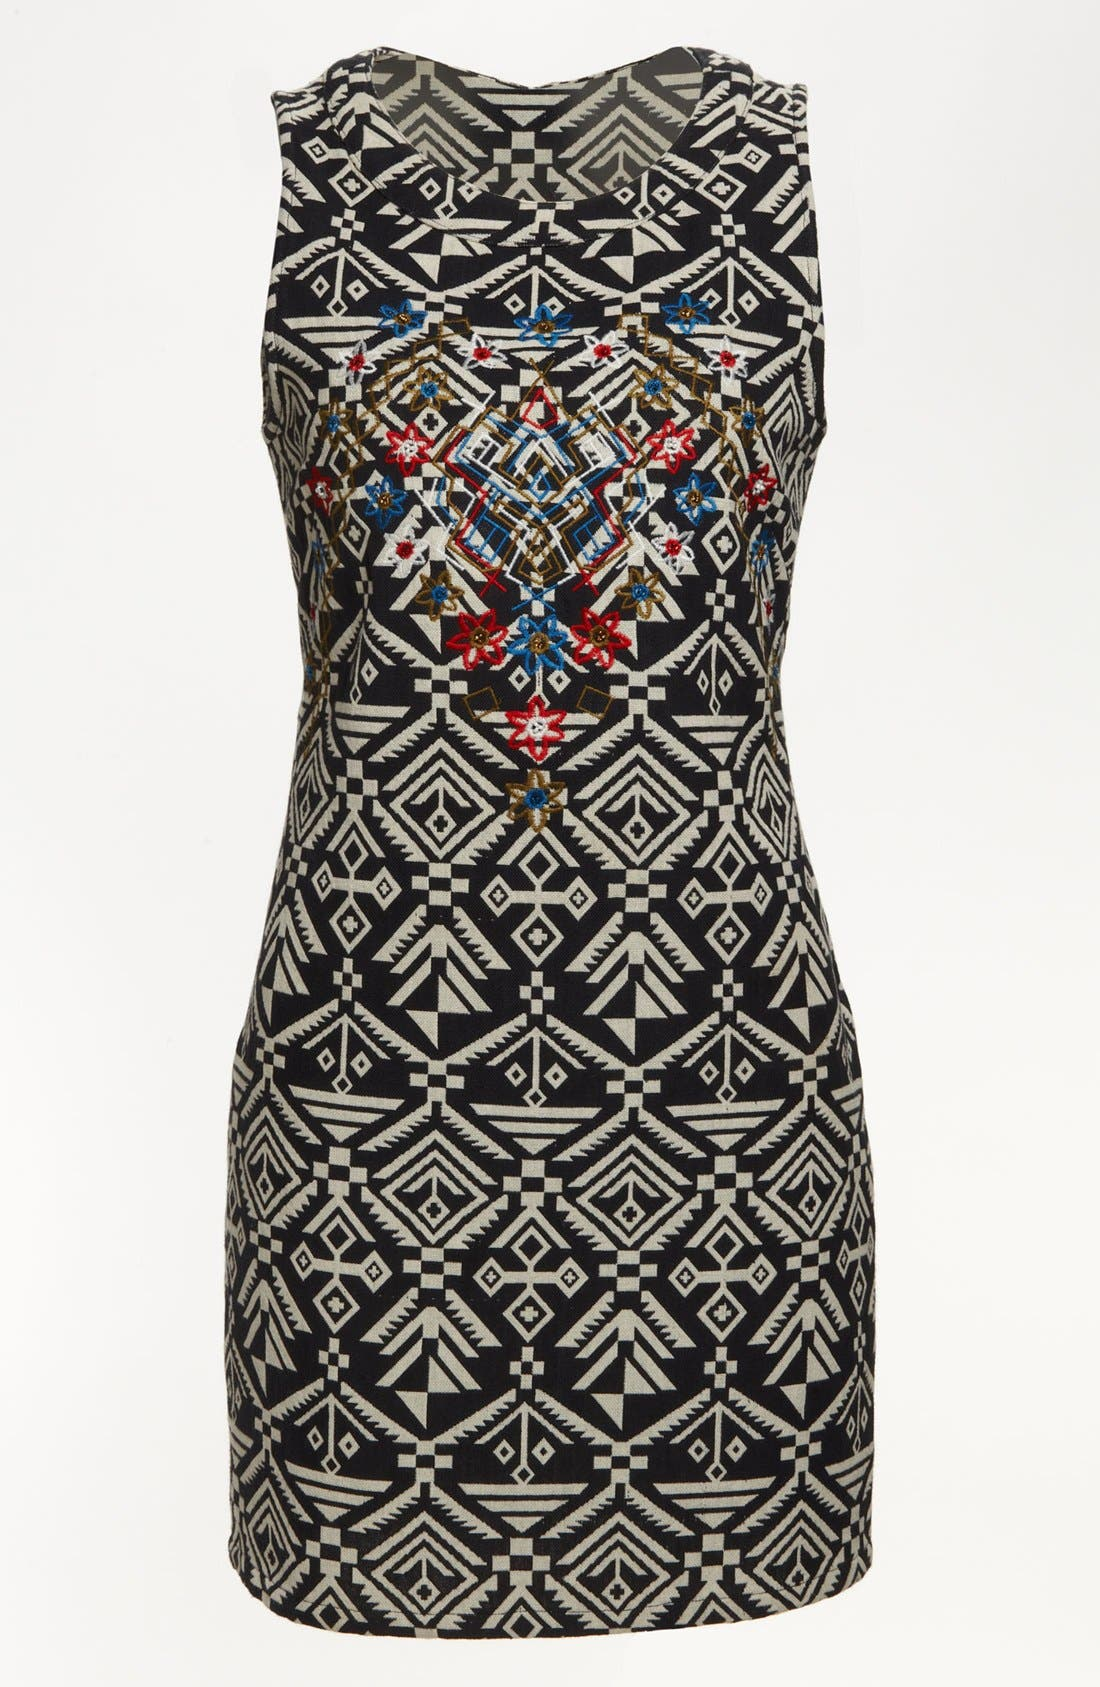 Alternate Image 1 Selected - ASTR Tribal Print Body-Con Dress